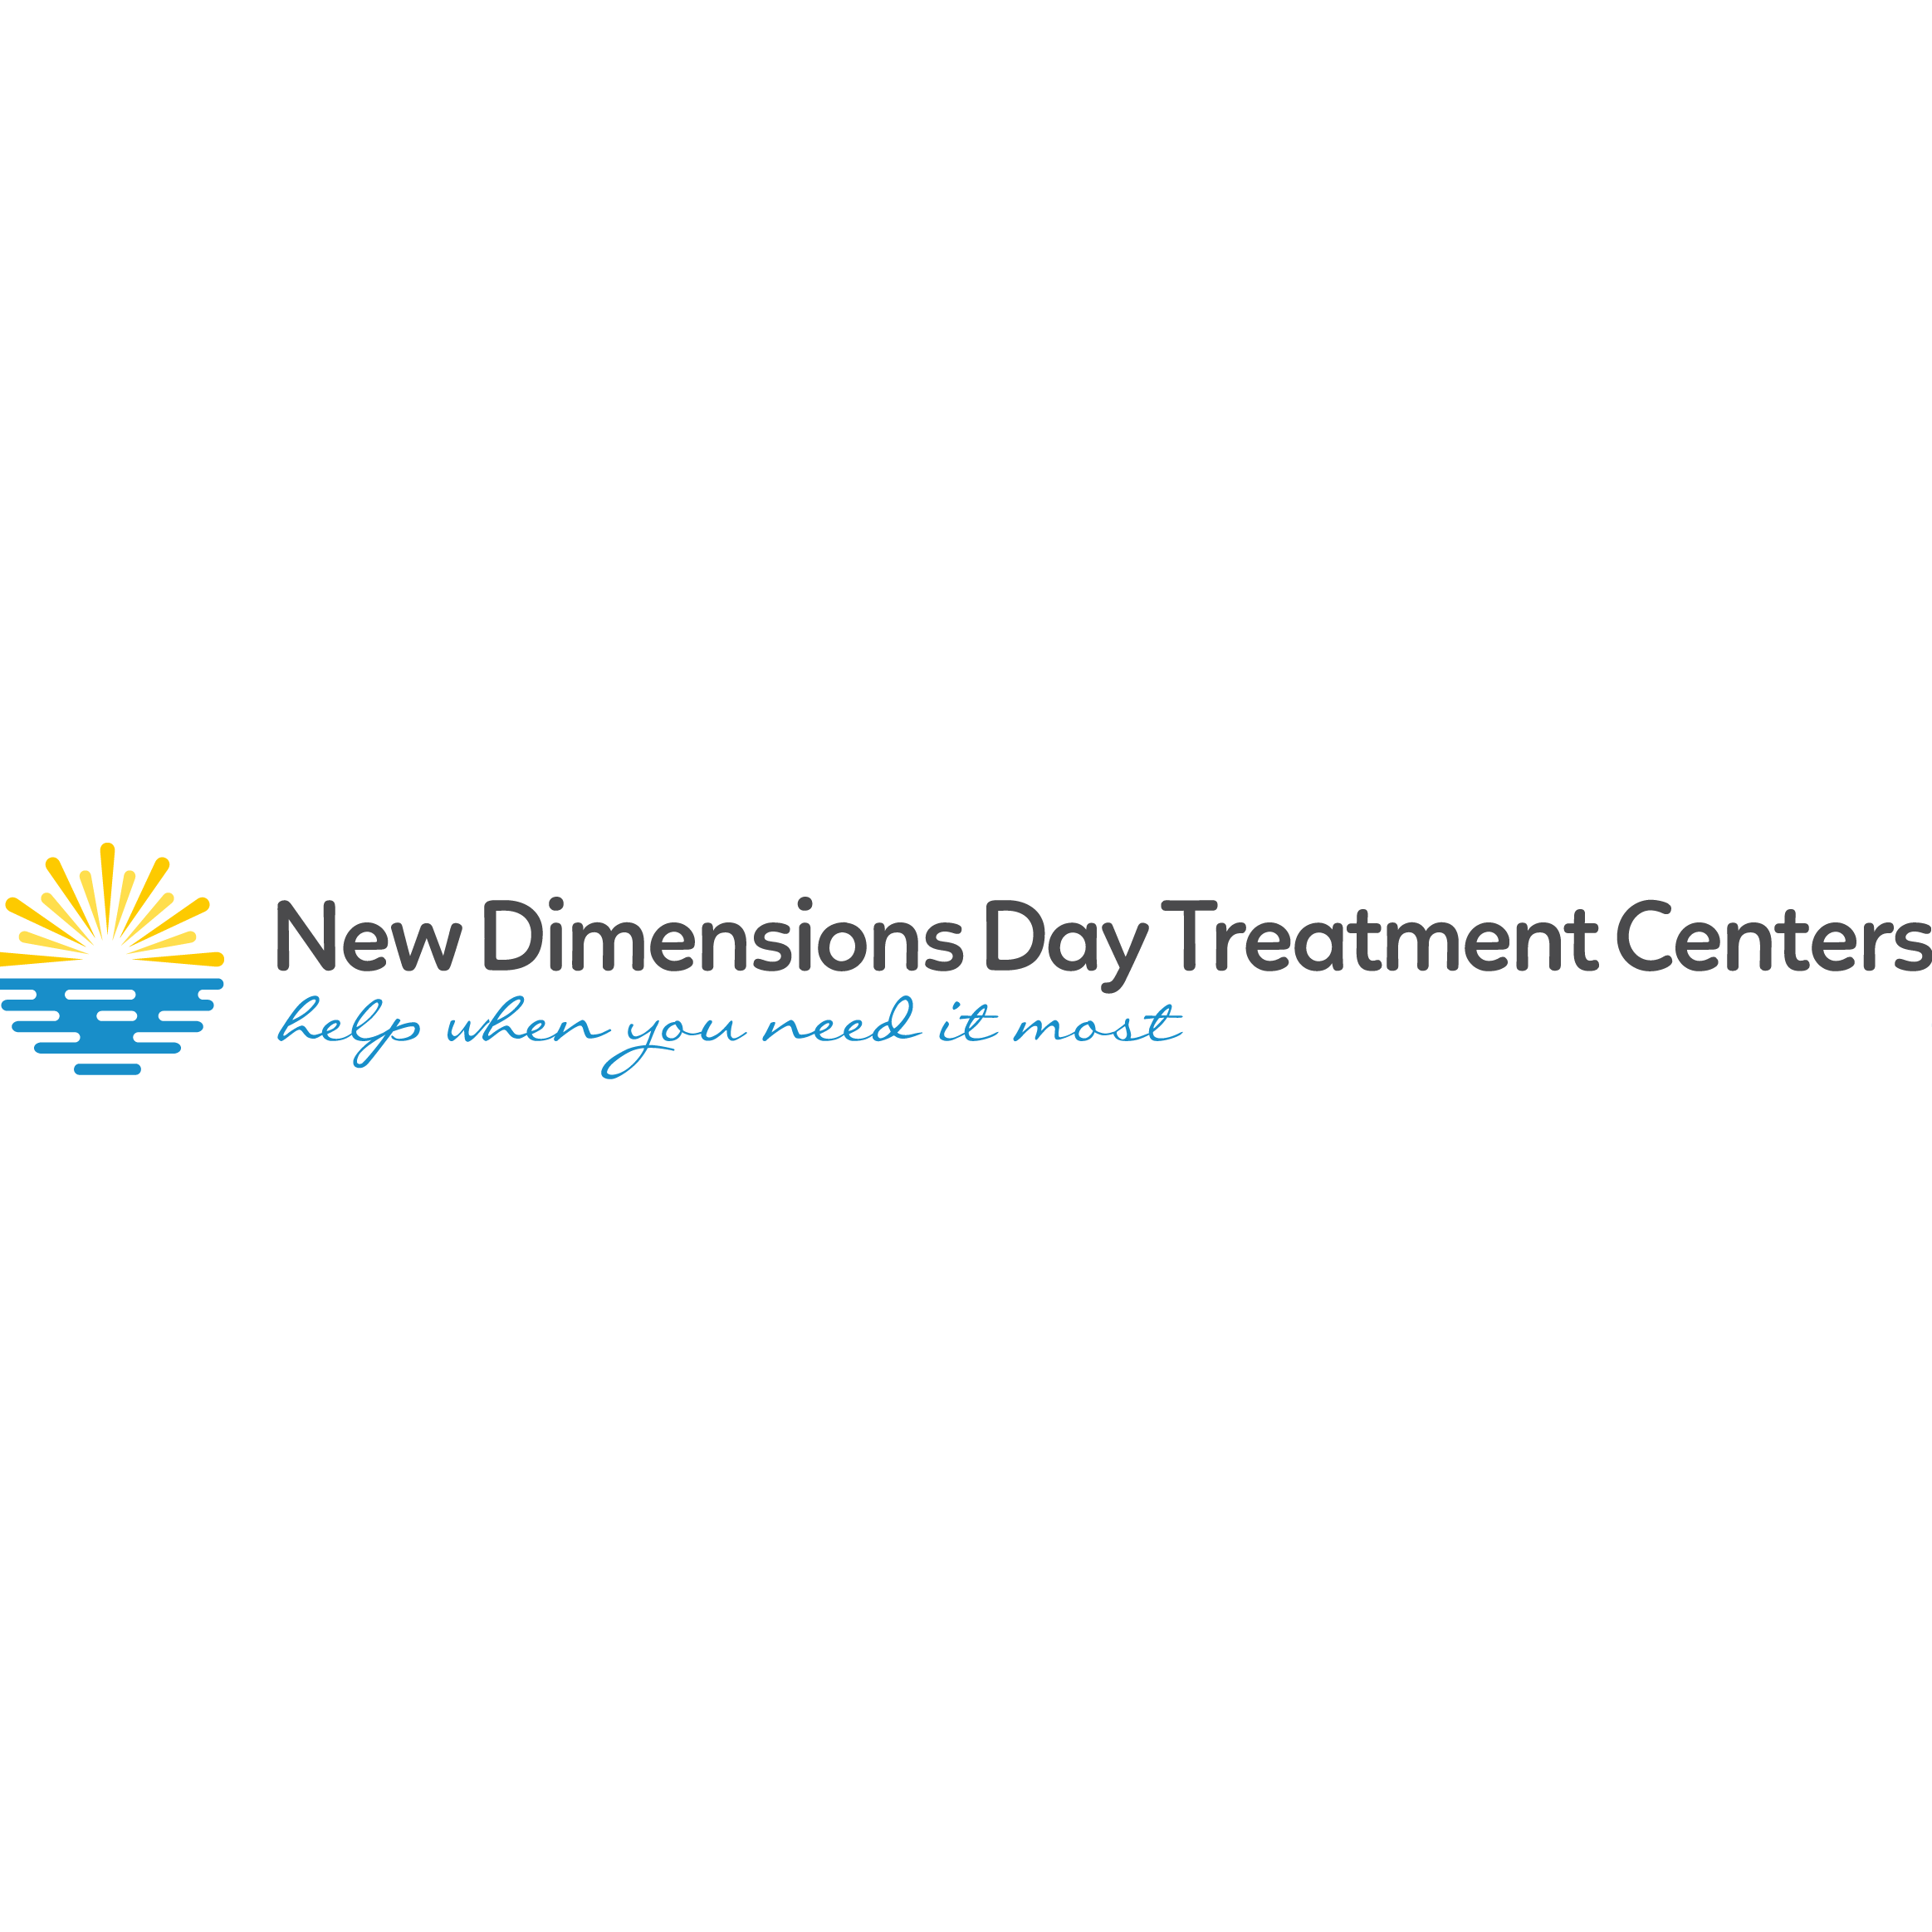 New Dimensions Day Treatment Centers